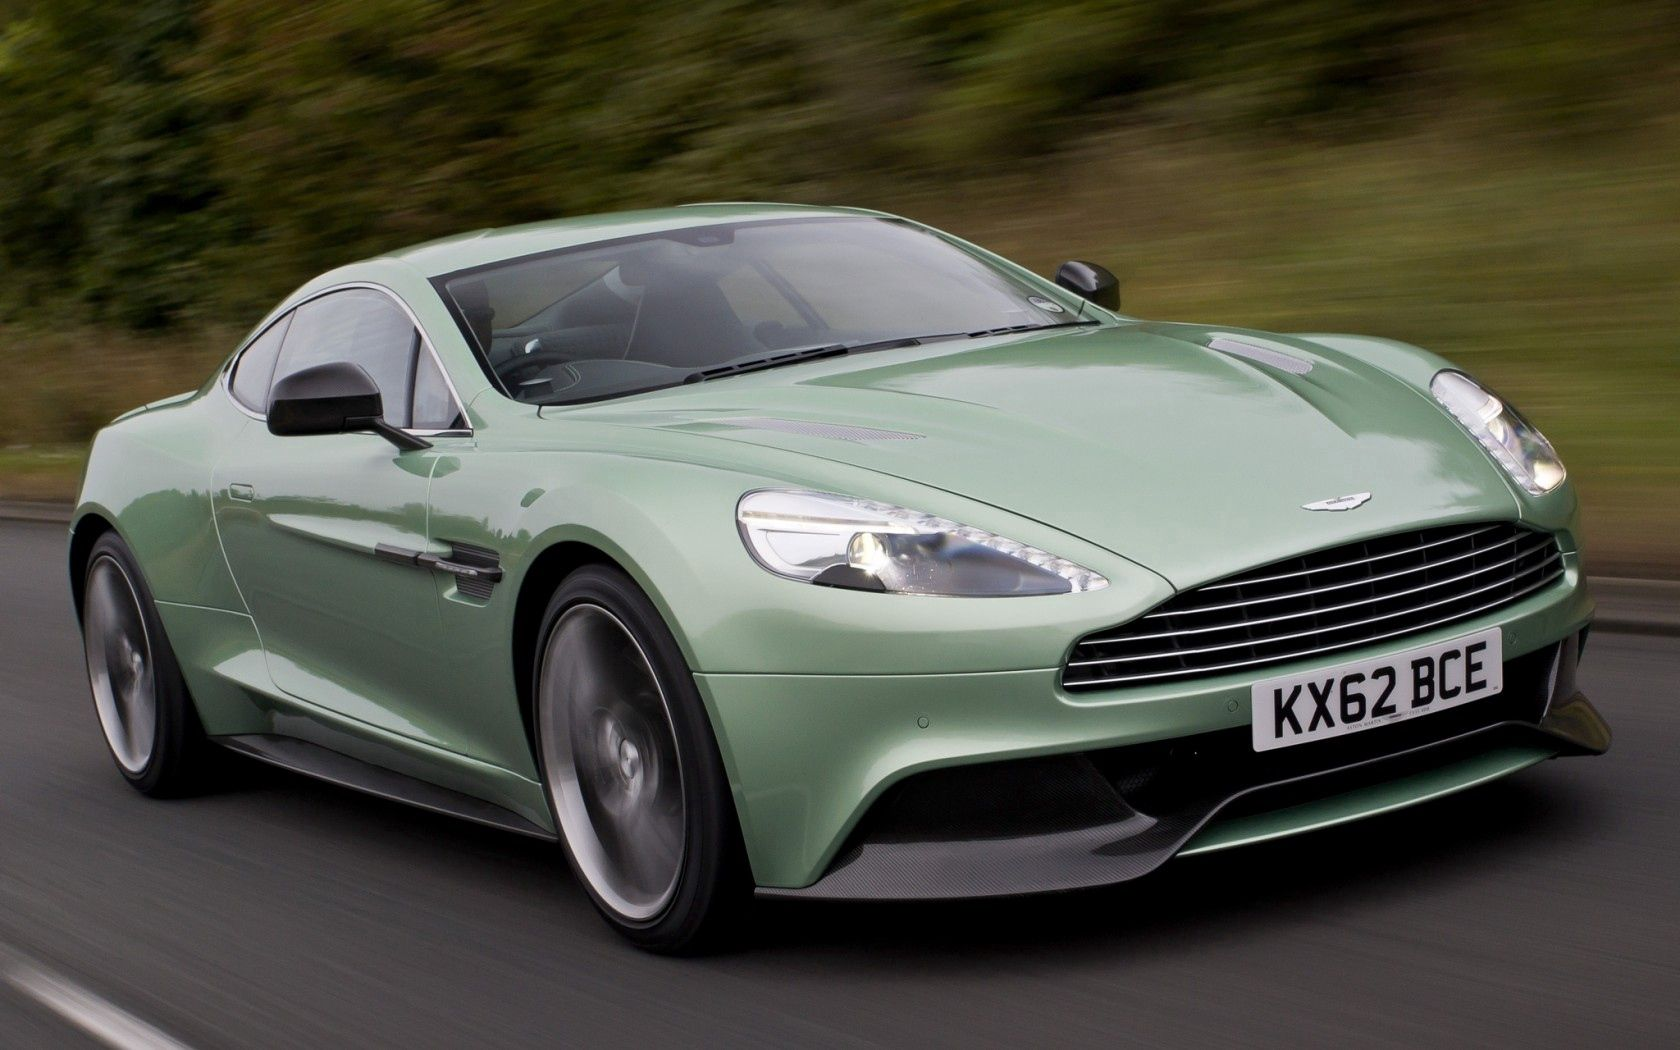 98461 download wallpaper Aston Martin, Cars, Supercar screensavers and pictures for free